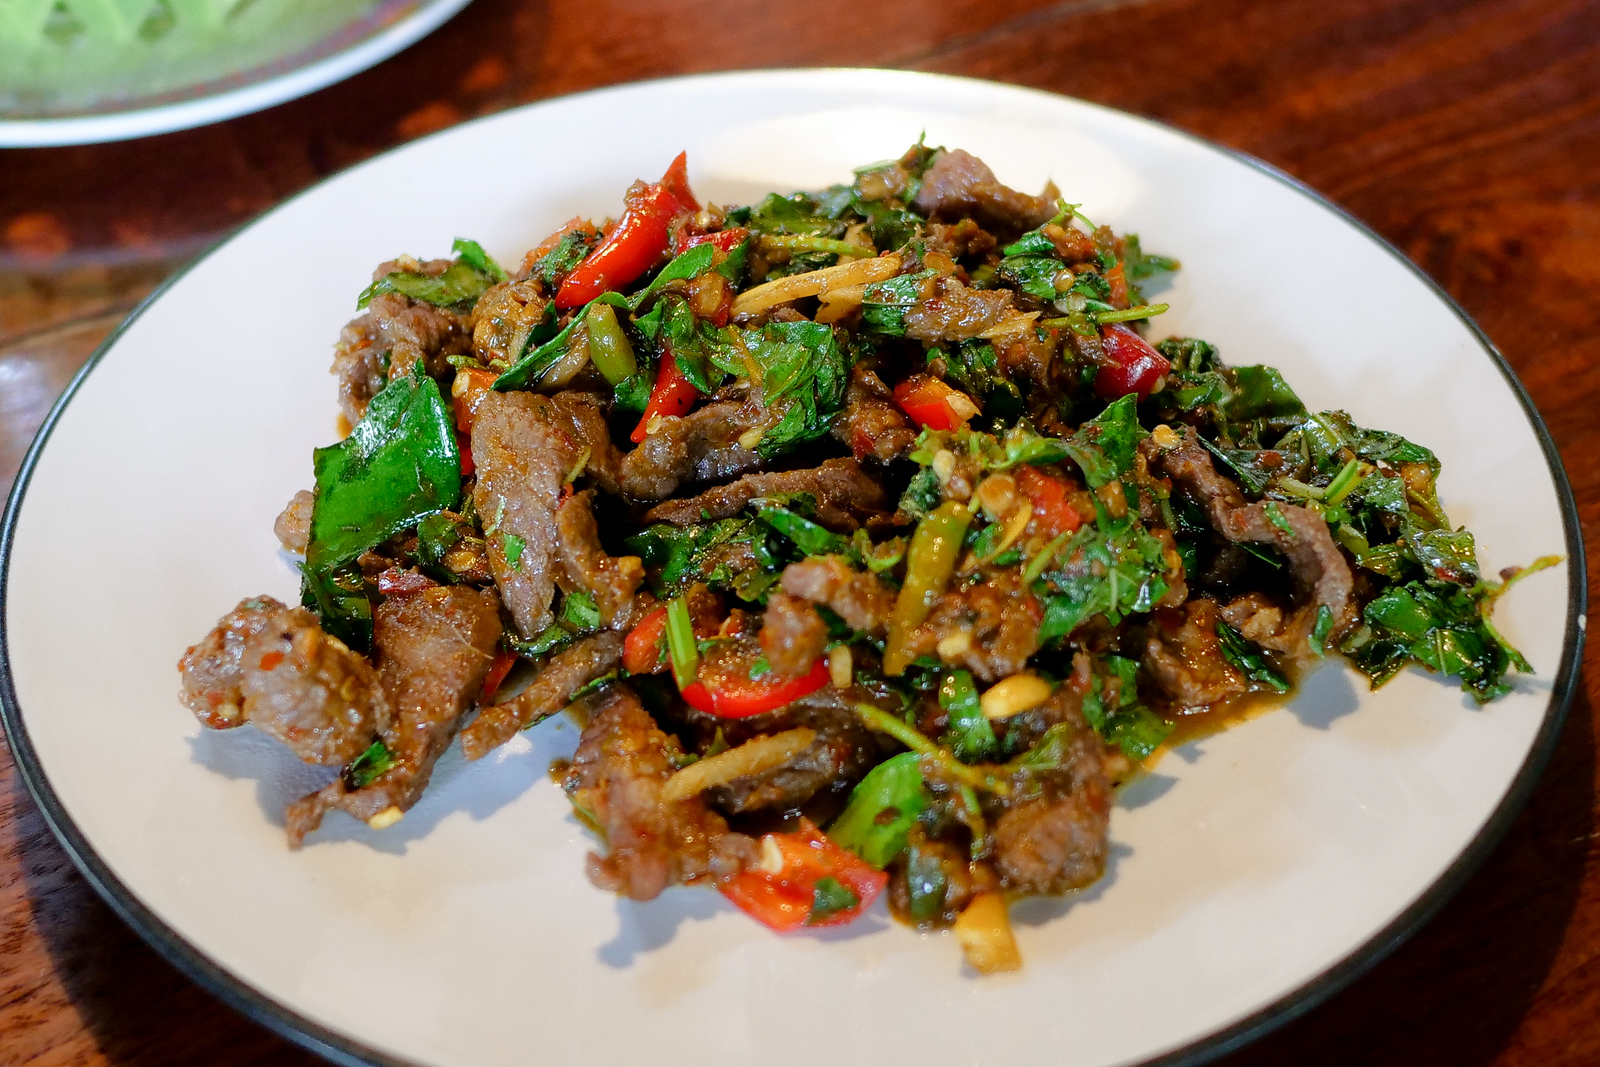 Pad Pet Gwang Deer Jungle Curry at Pa Chao Restaurant